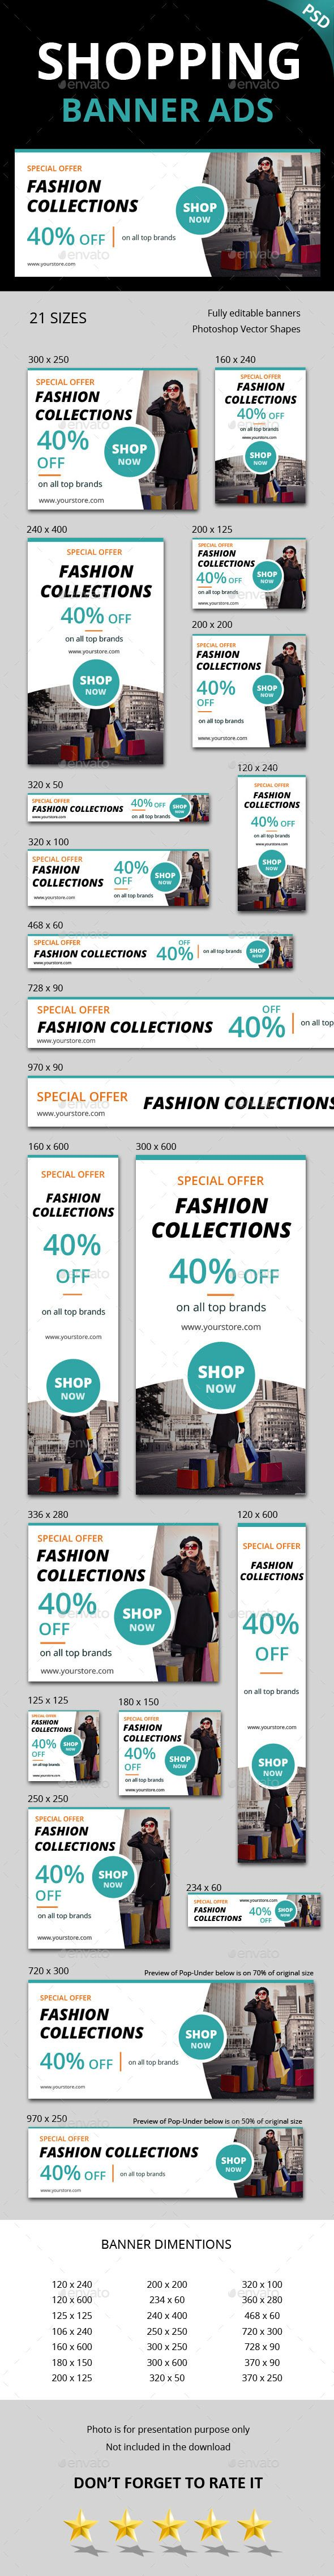 Shopping Ad Banner Template PSD. Download here: http://graphicriver.net/item/shopping-ad-banner/15064359?ref=ksioks